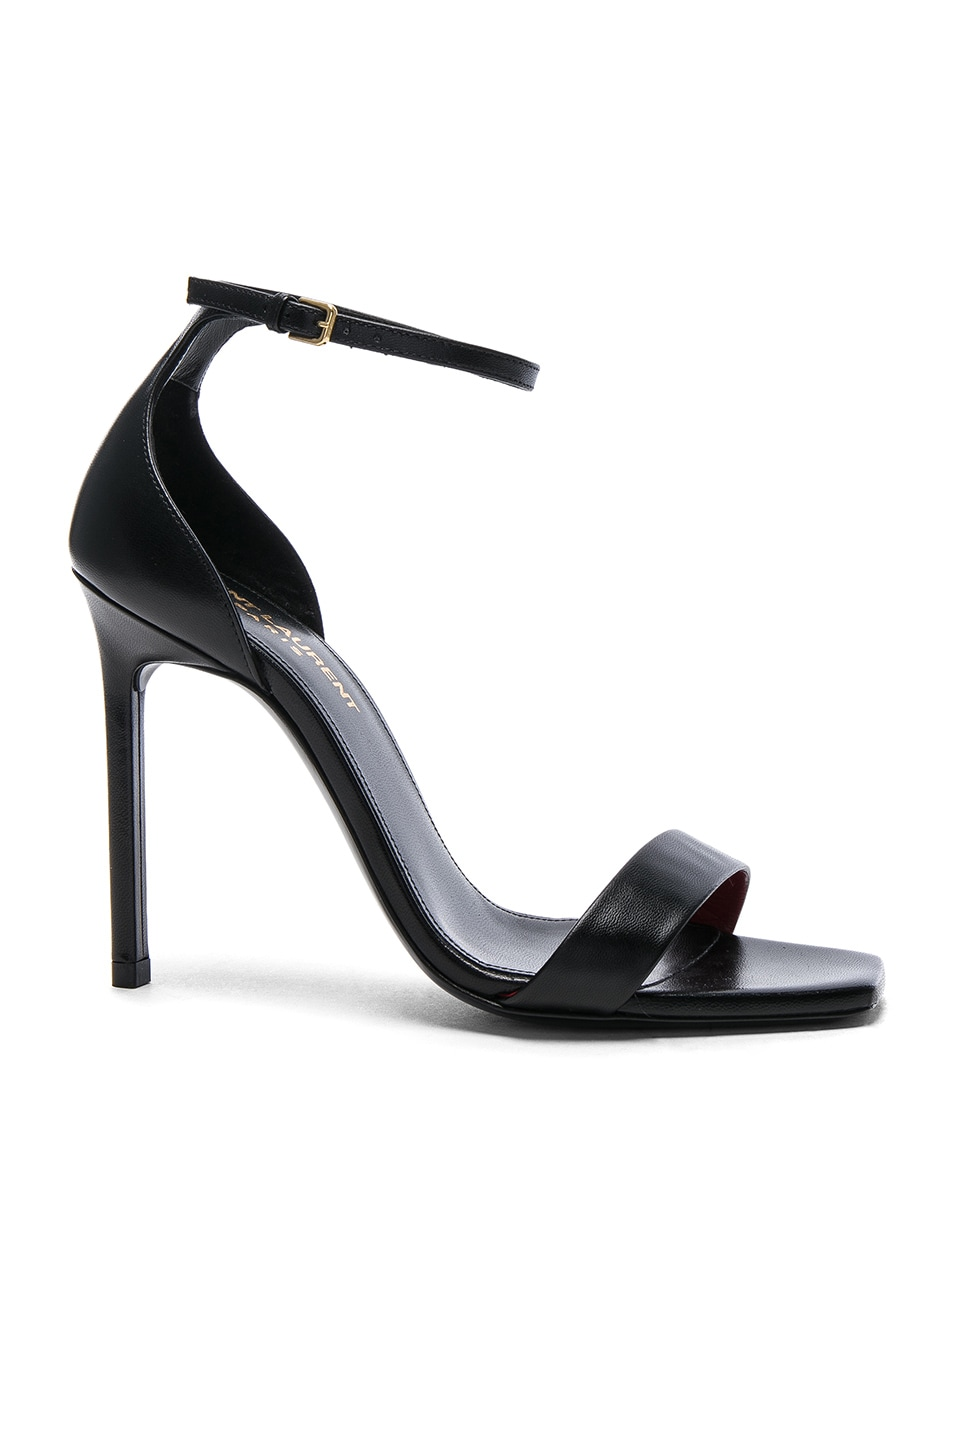 Image 1 of Saint Laurent Leather Amber Ankle Strap Heels in Black